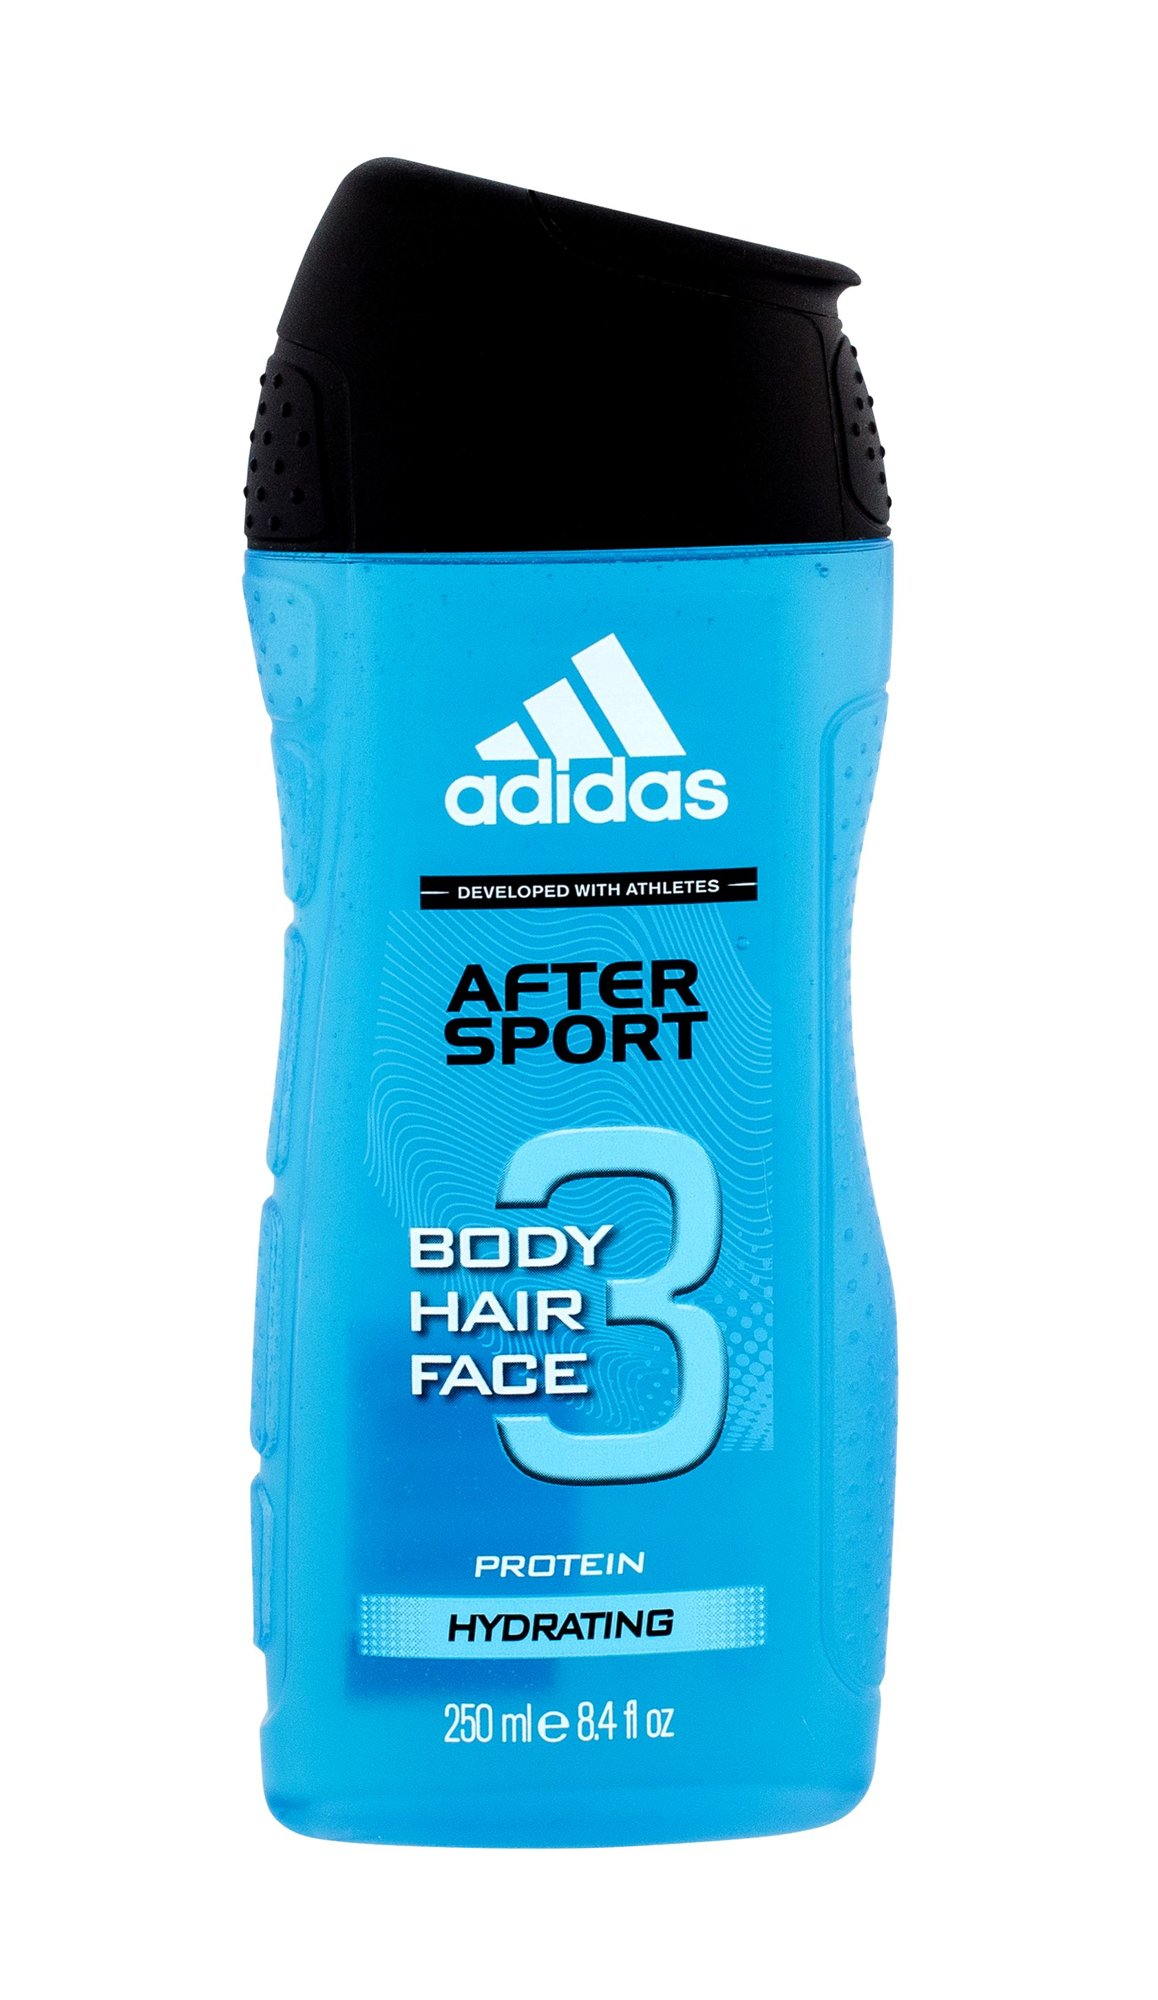 Adidas After Sport Shower gel 250ml